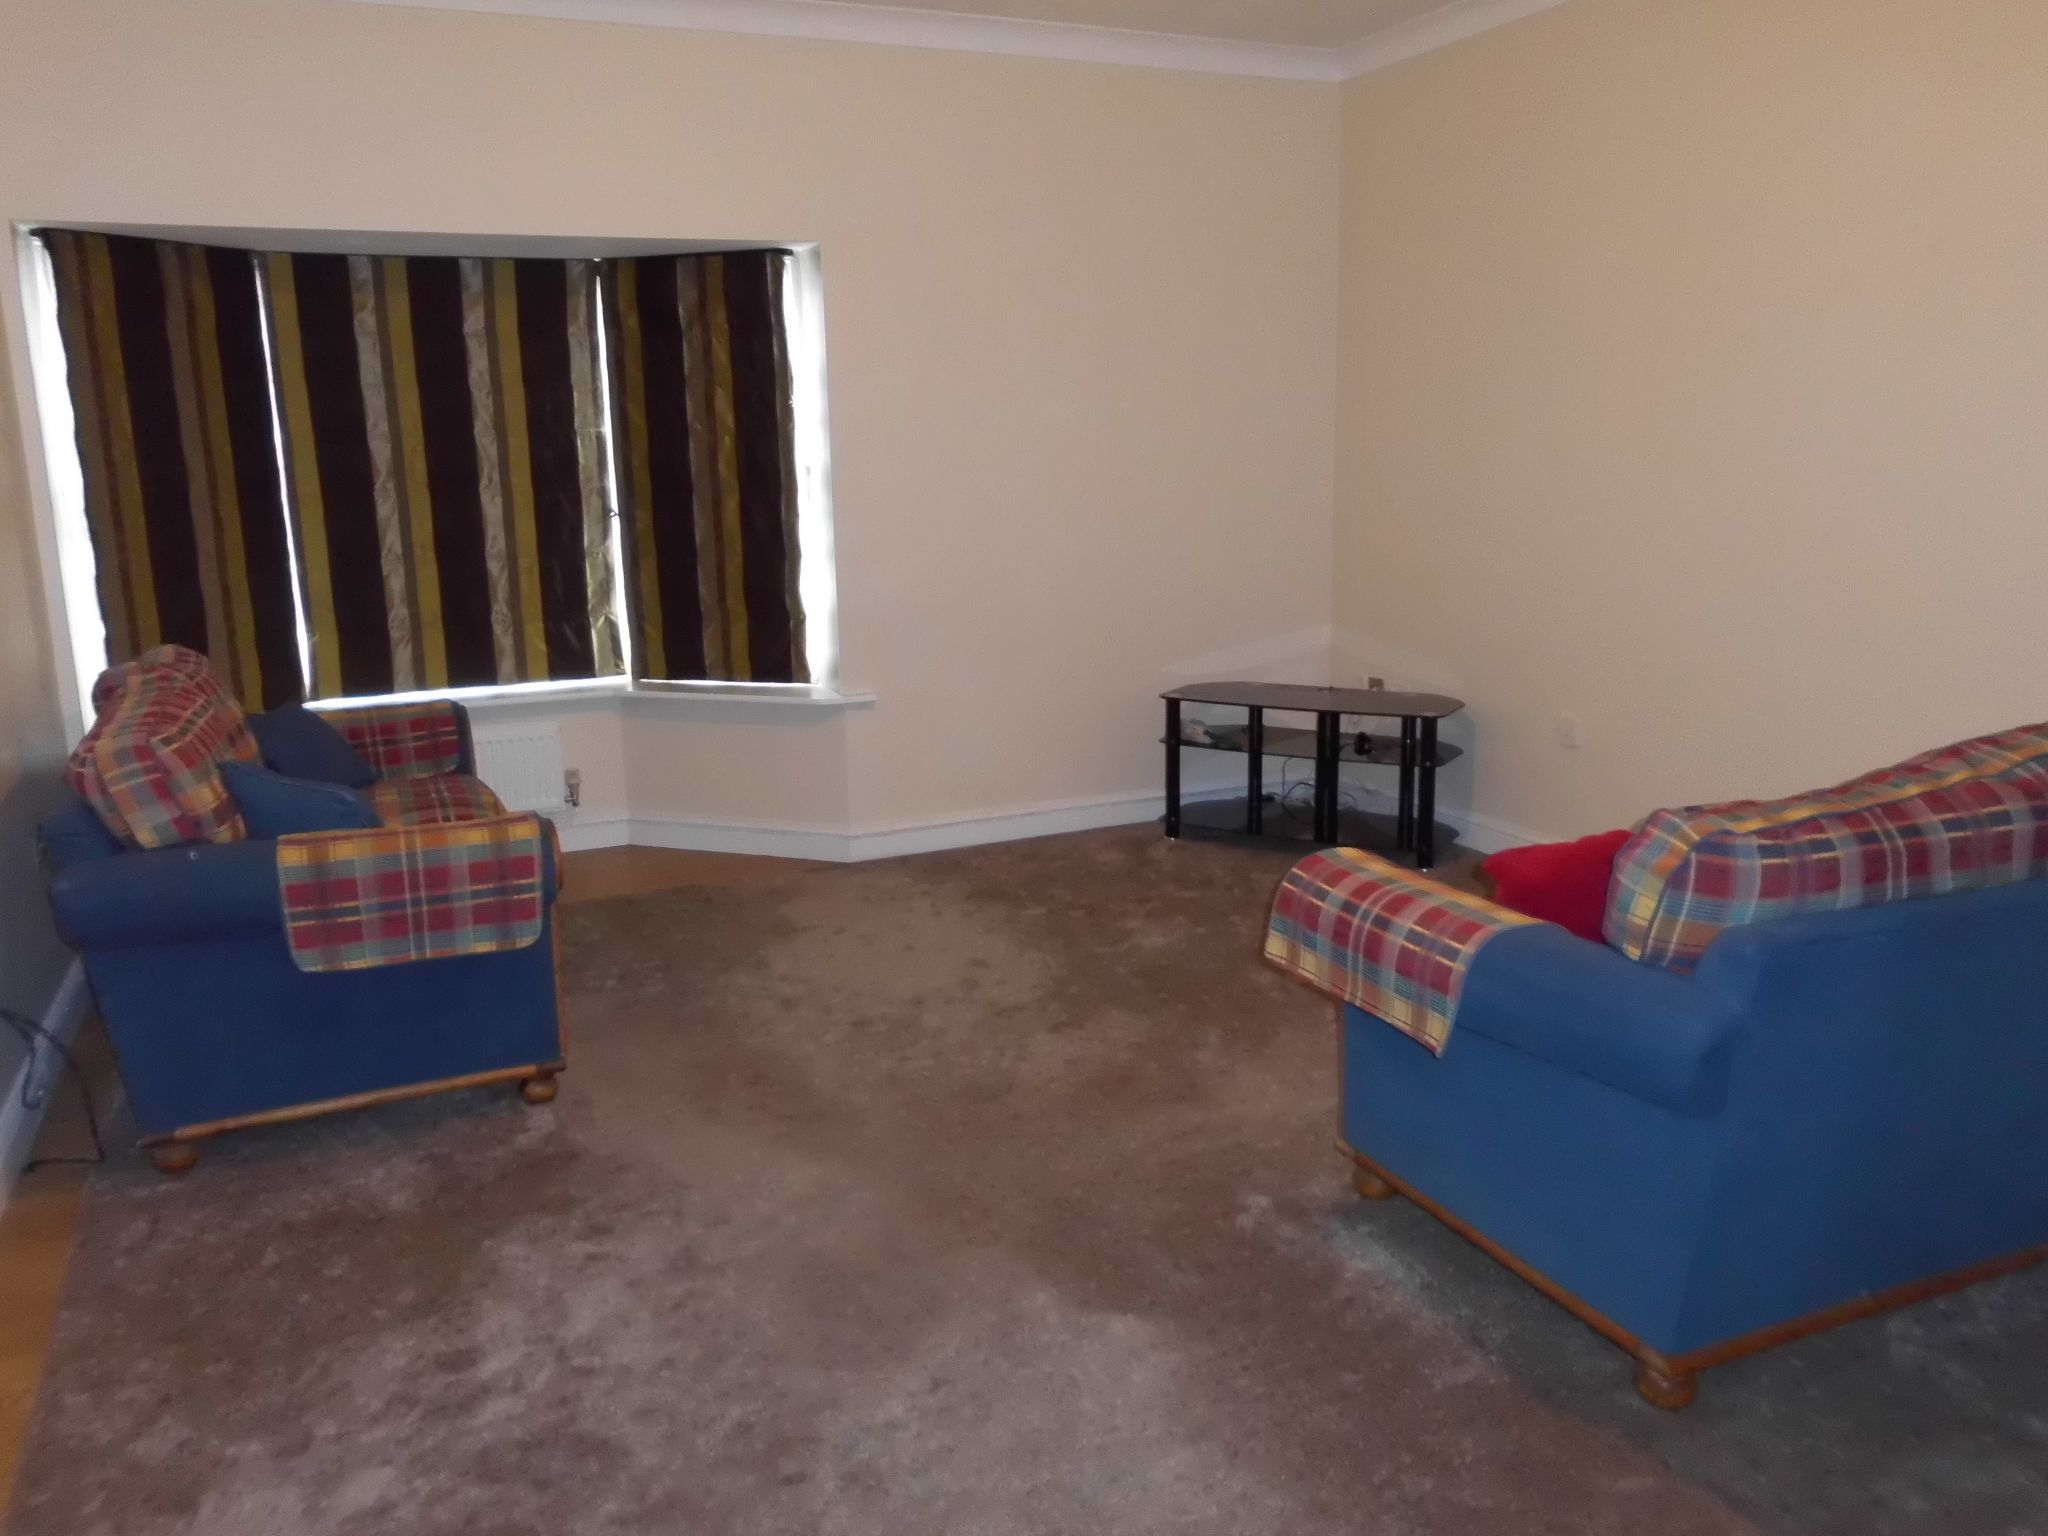 2 bedroom town house For Sale in Leicester - Photograph 5.